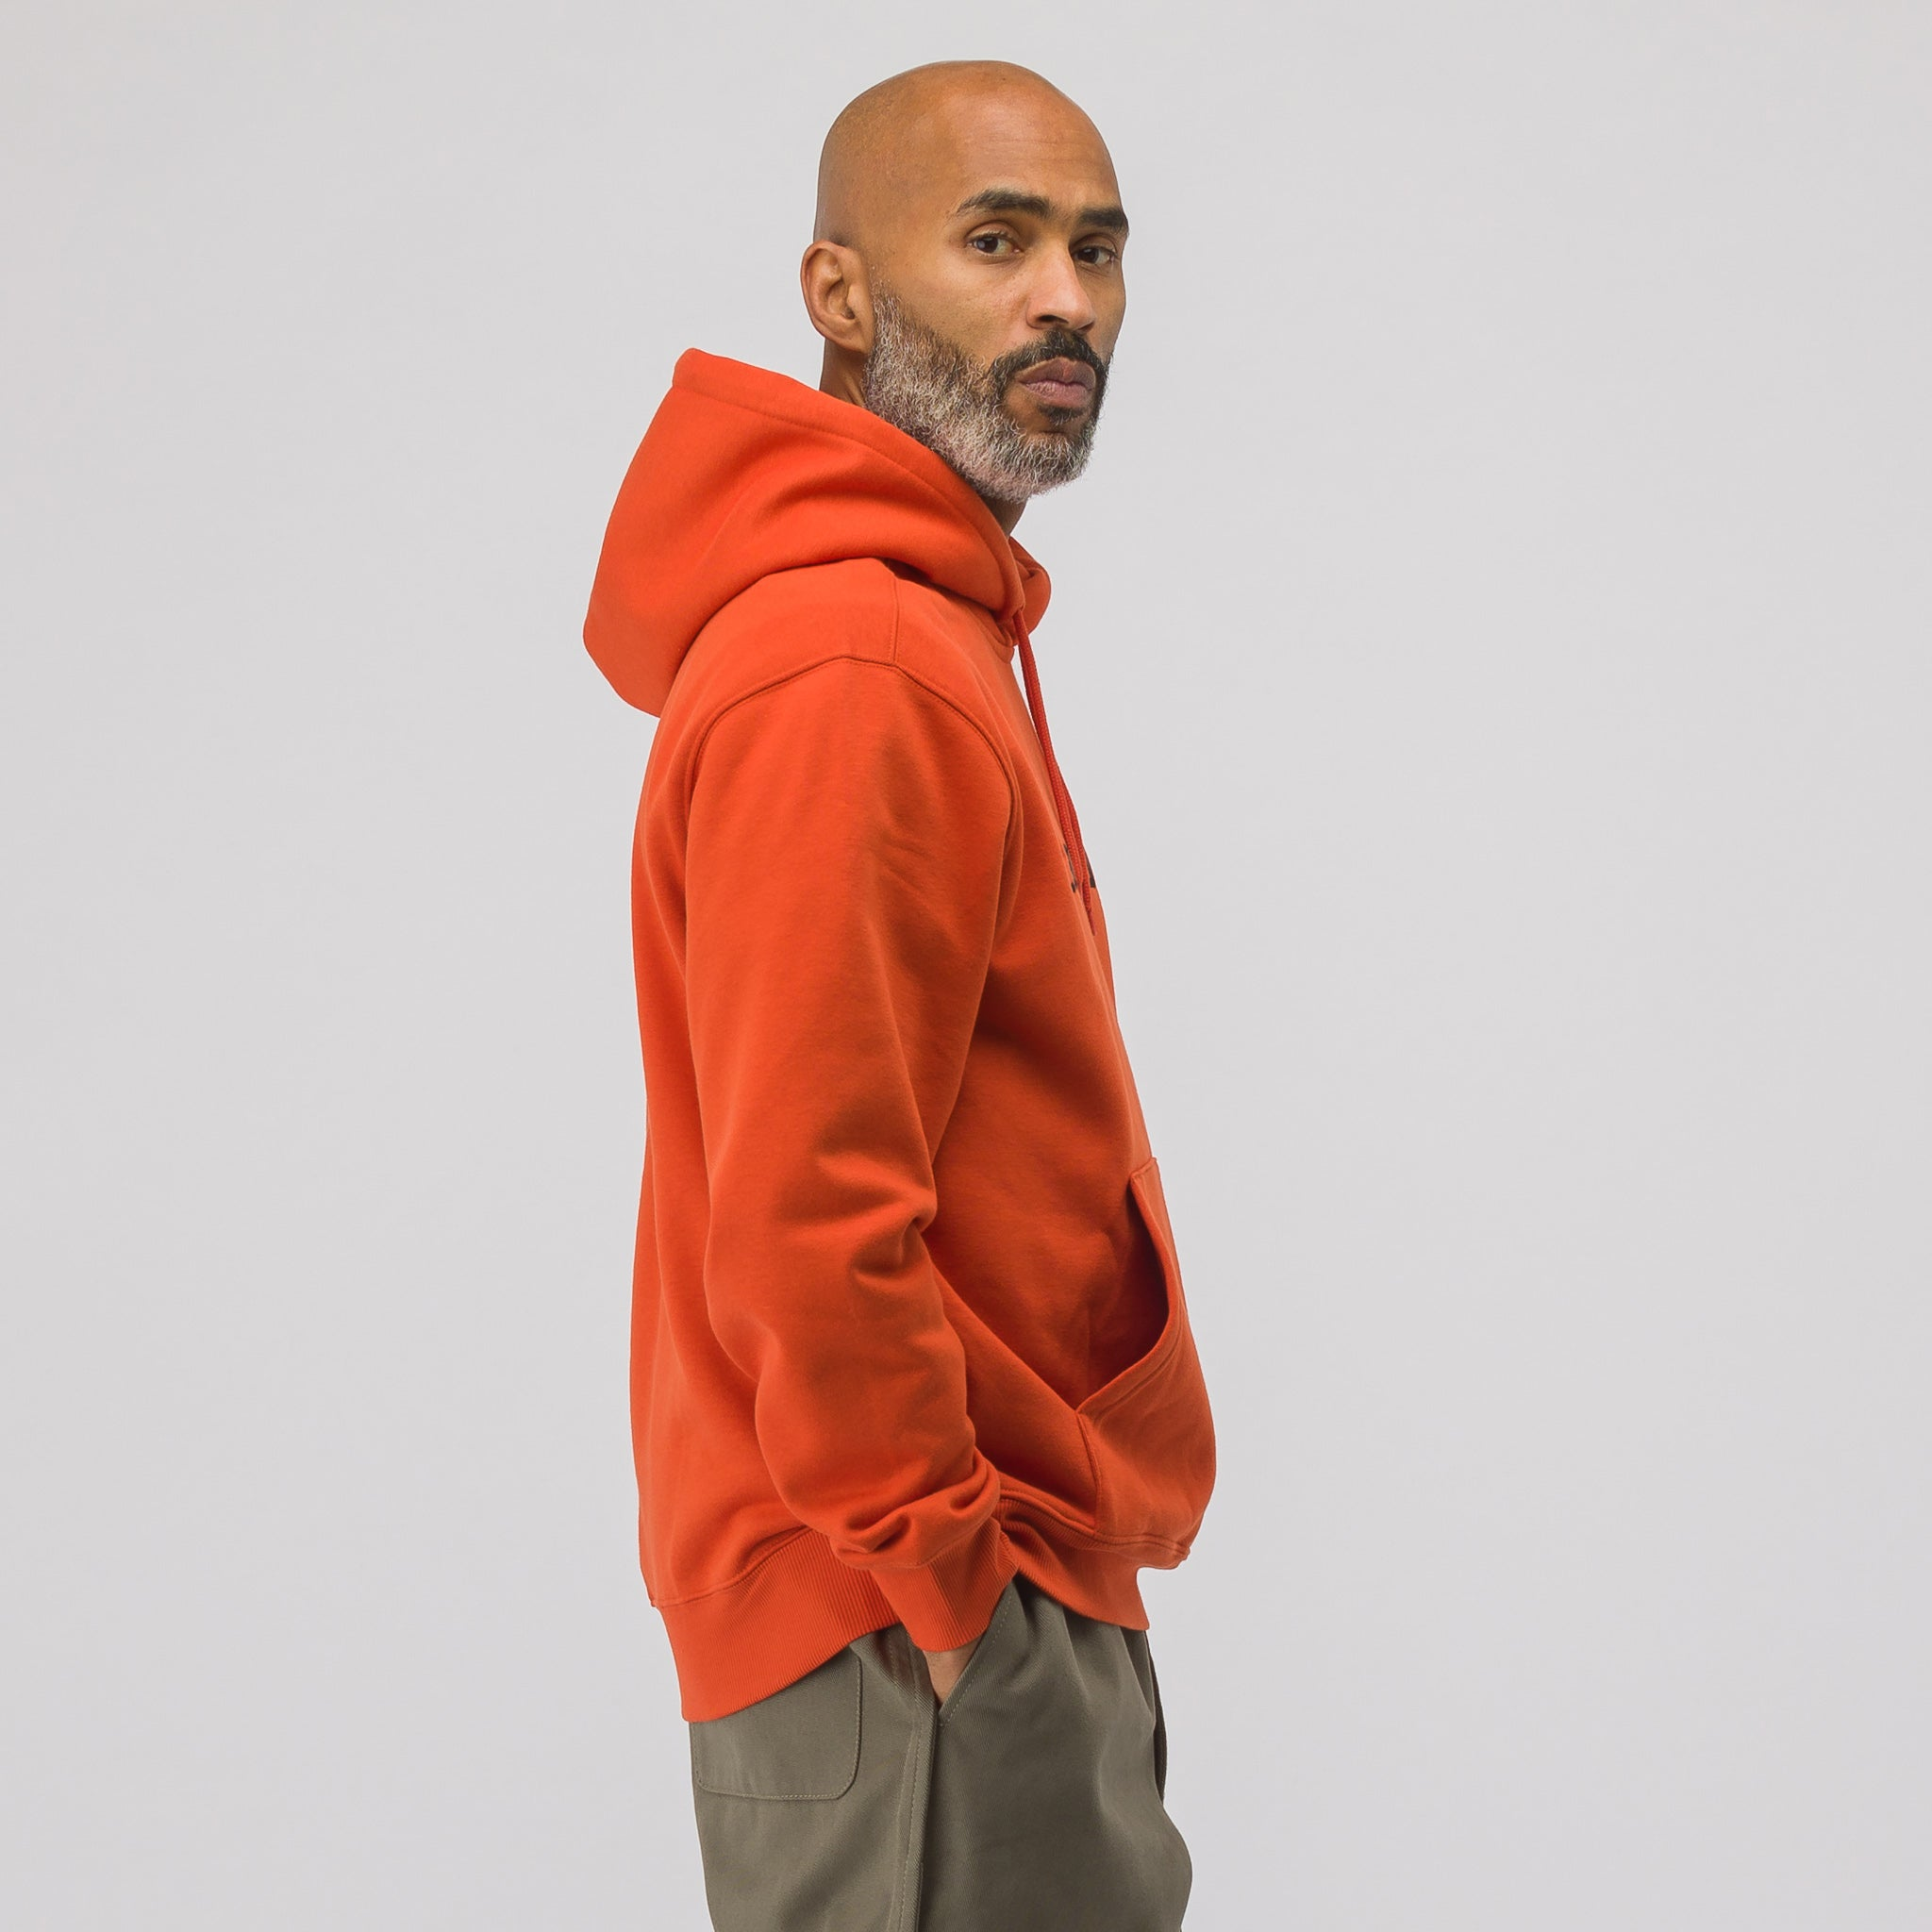 Hooded Carhartt Sweatshirt in Orange